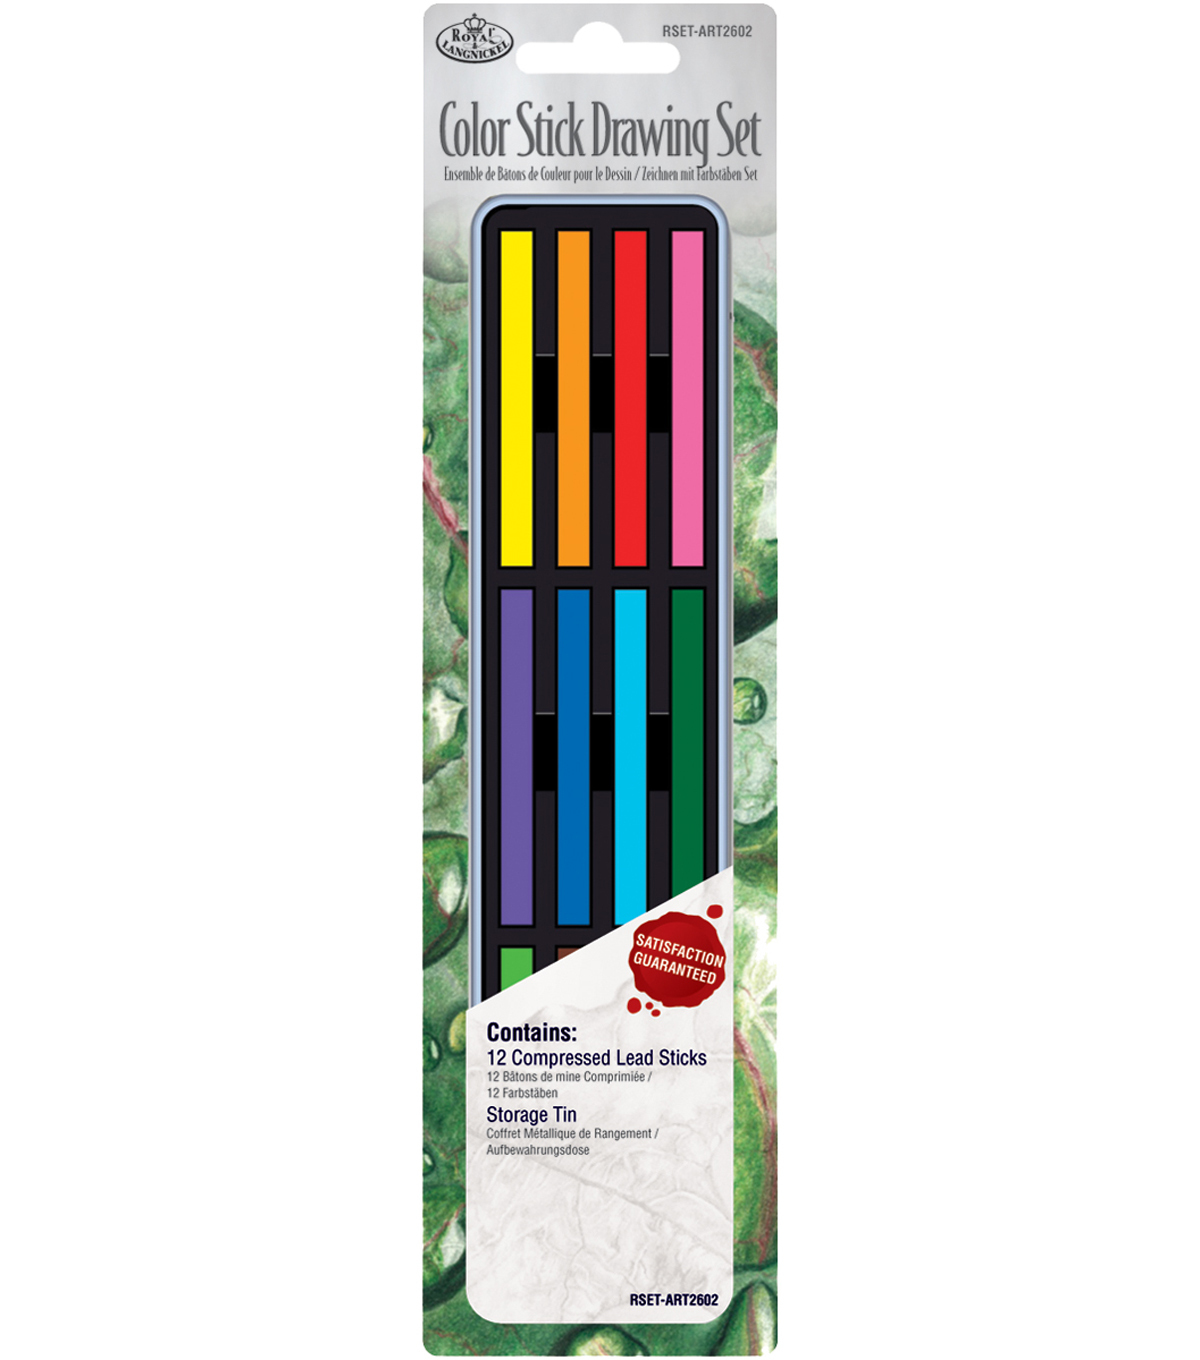 Royal Brush Color Stick Drawing Set-12PK